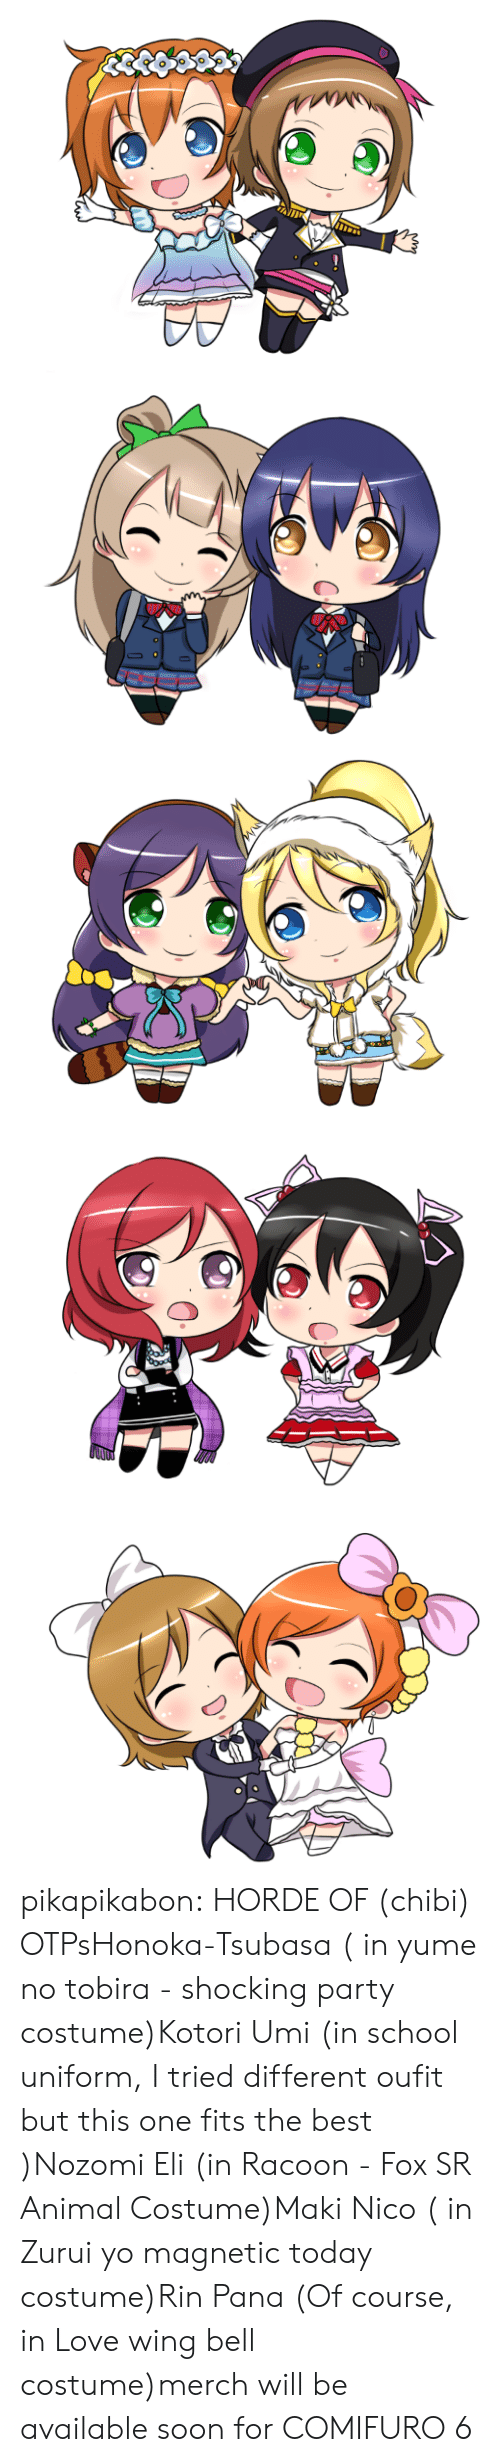 Love, Party, and School: ojo pikapikabon:  HORDE OF (chibi) OTPsHonoka-Tsubasa ( in yume no tobira - shocking party costume)Kotori Umi (in school uniform, I tried different oufit but this one fits the best )Nozomi Eli (in Racoon - Fox SR Animal Costume)Maki Nico ( in Zurui yo magnetic today costume)Rin Pana (Of course, in Love wing bell costume)merch will be available soon for COMIFURO 6